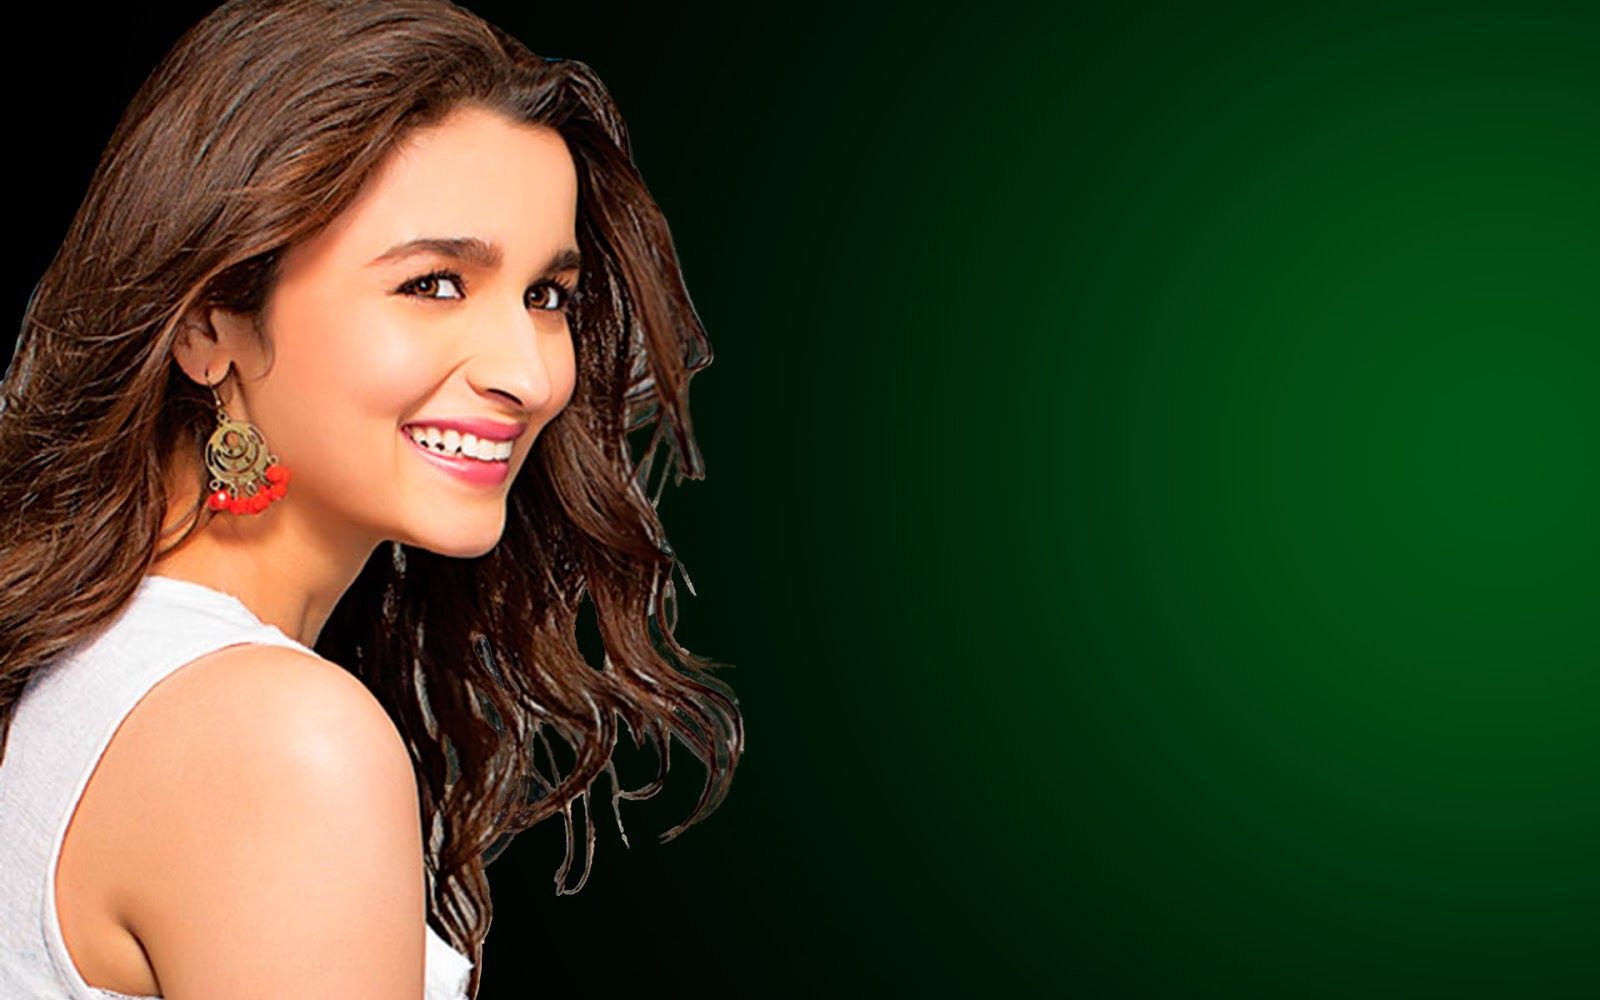 Alia Bhatt Birthday Hd: Beautiful Alia Bhatt Bollywood Sexy Girl Pictures 2018